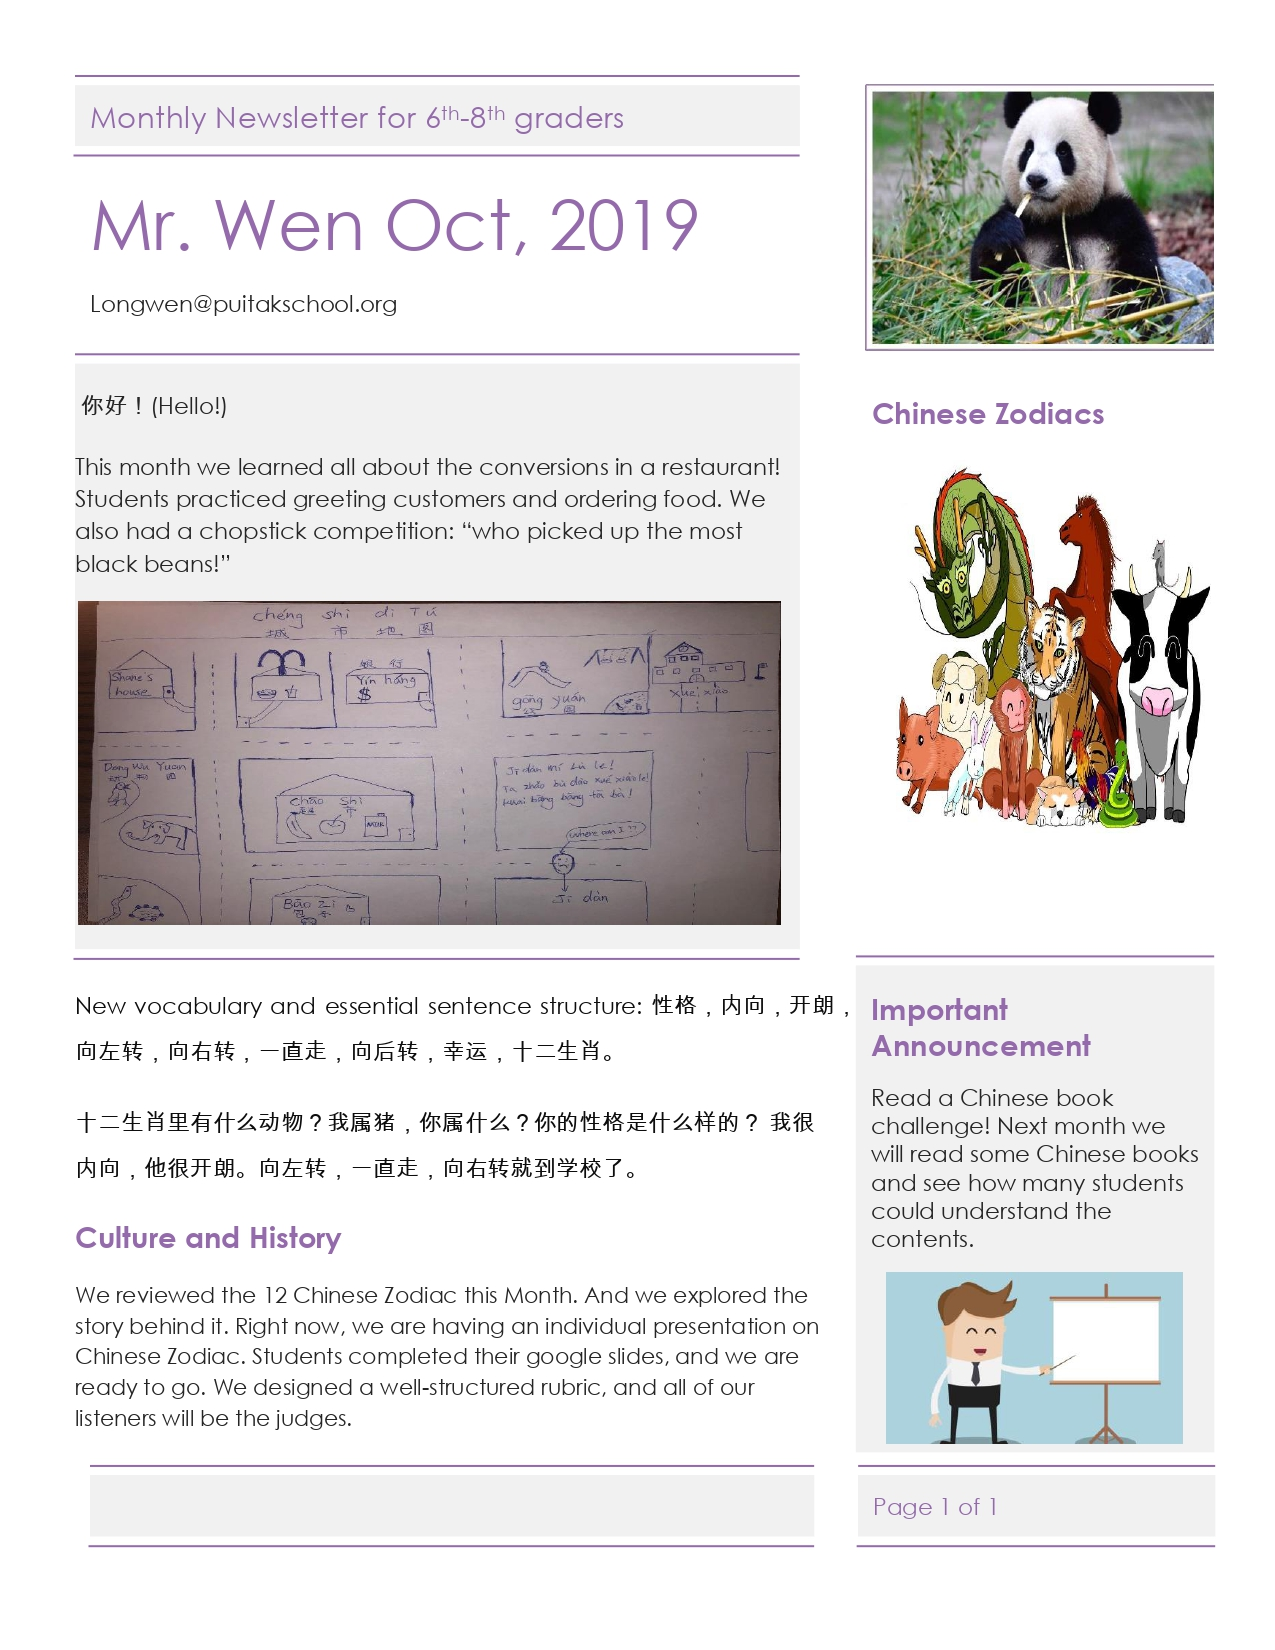 JackNewsletterOctober2019 for 6th-8th gr